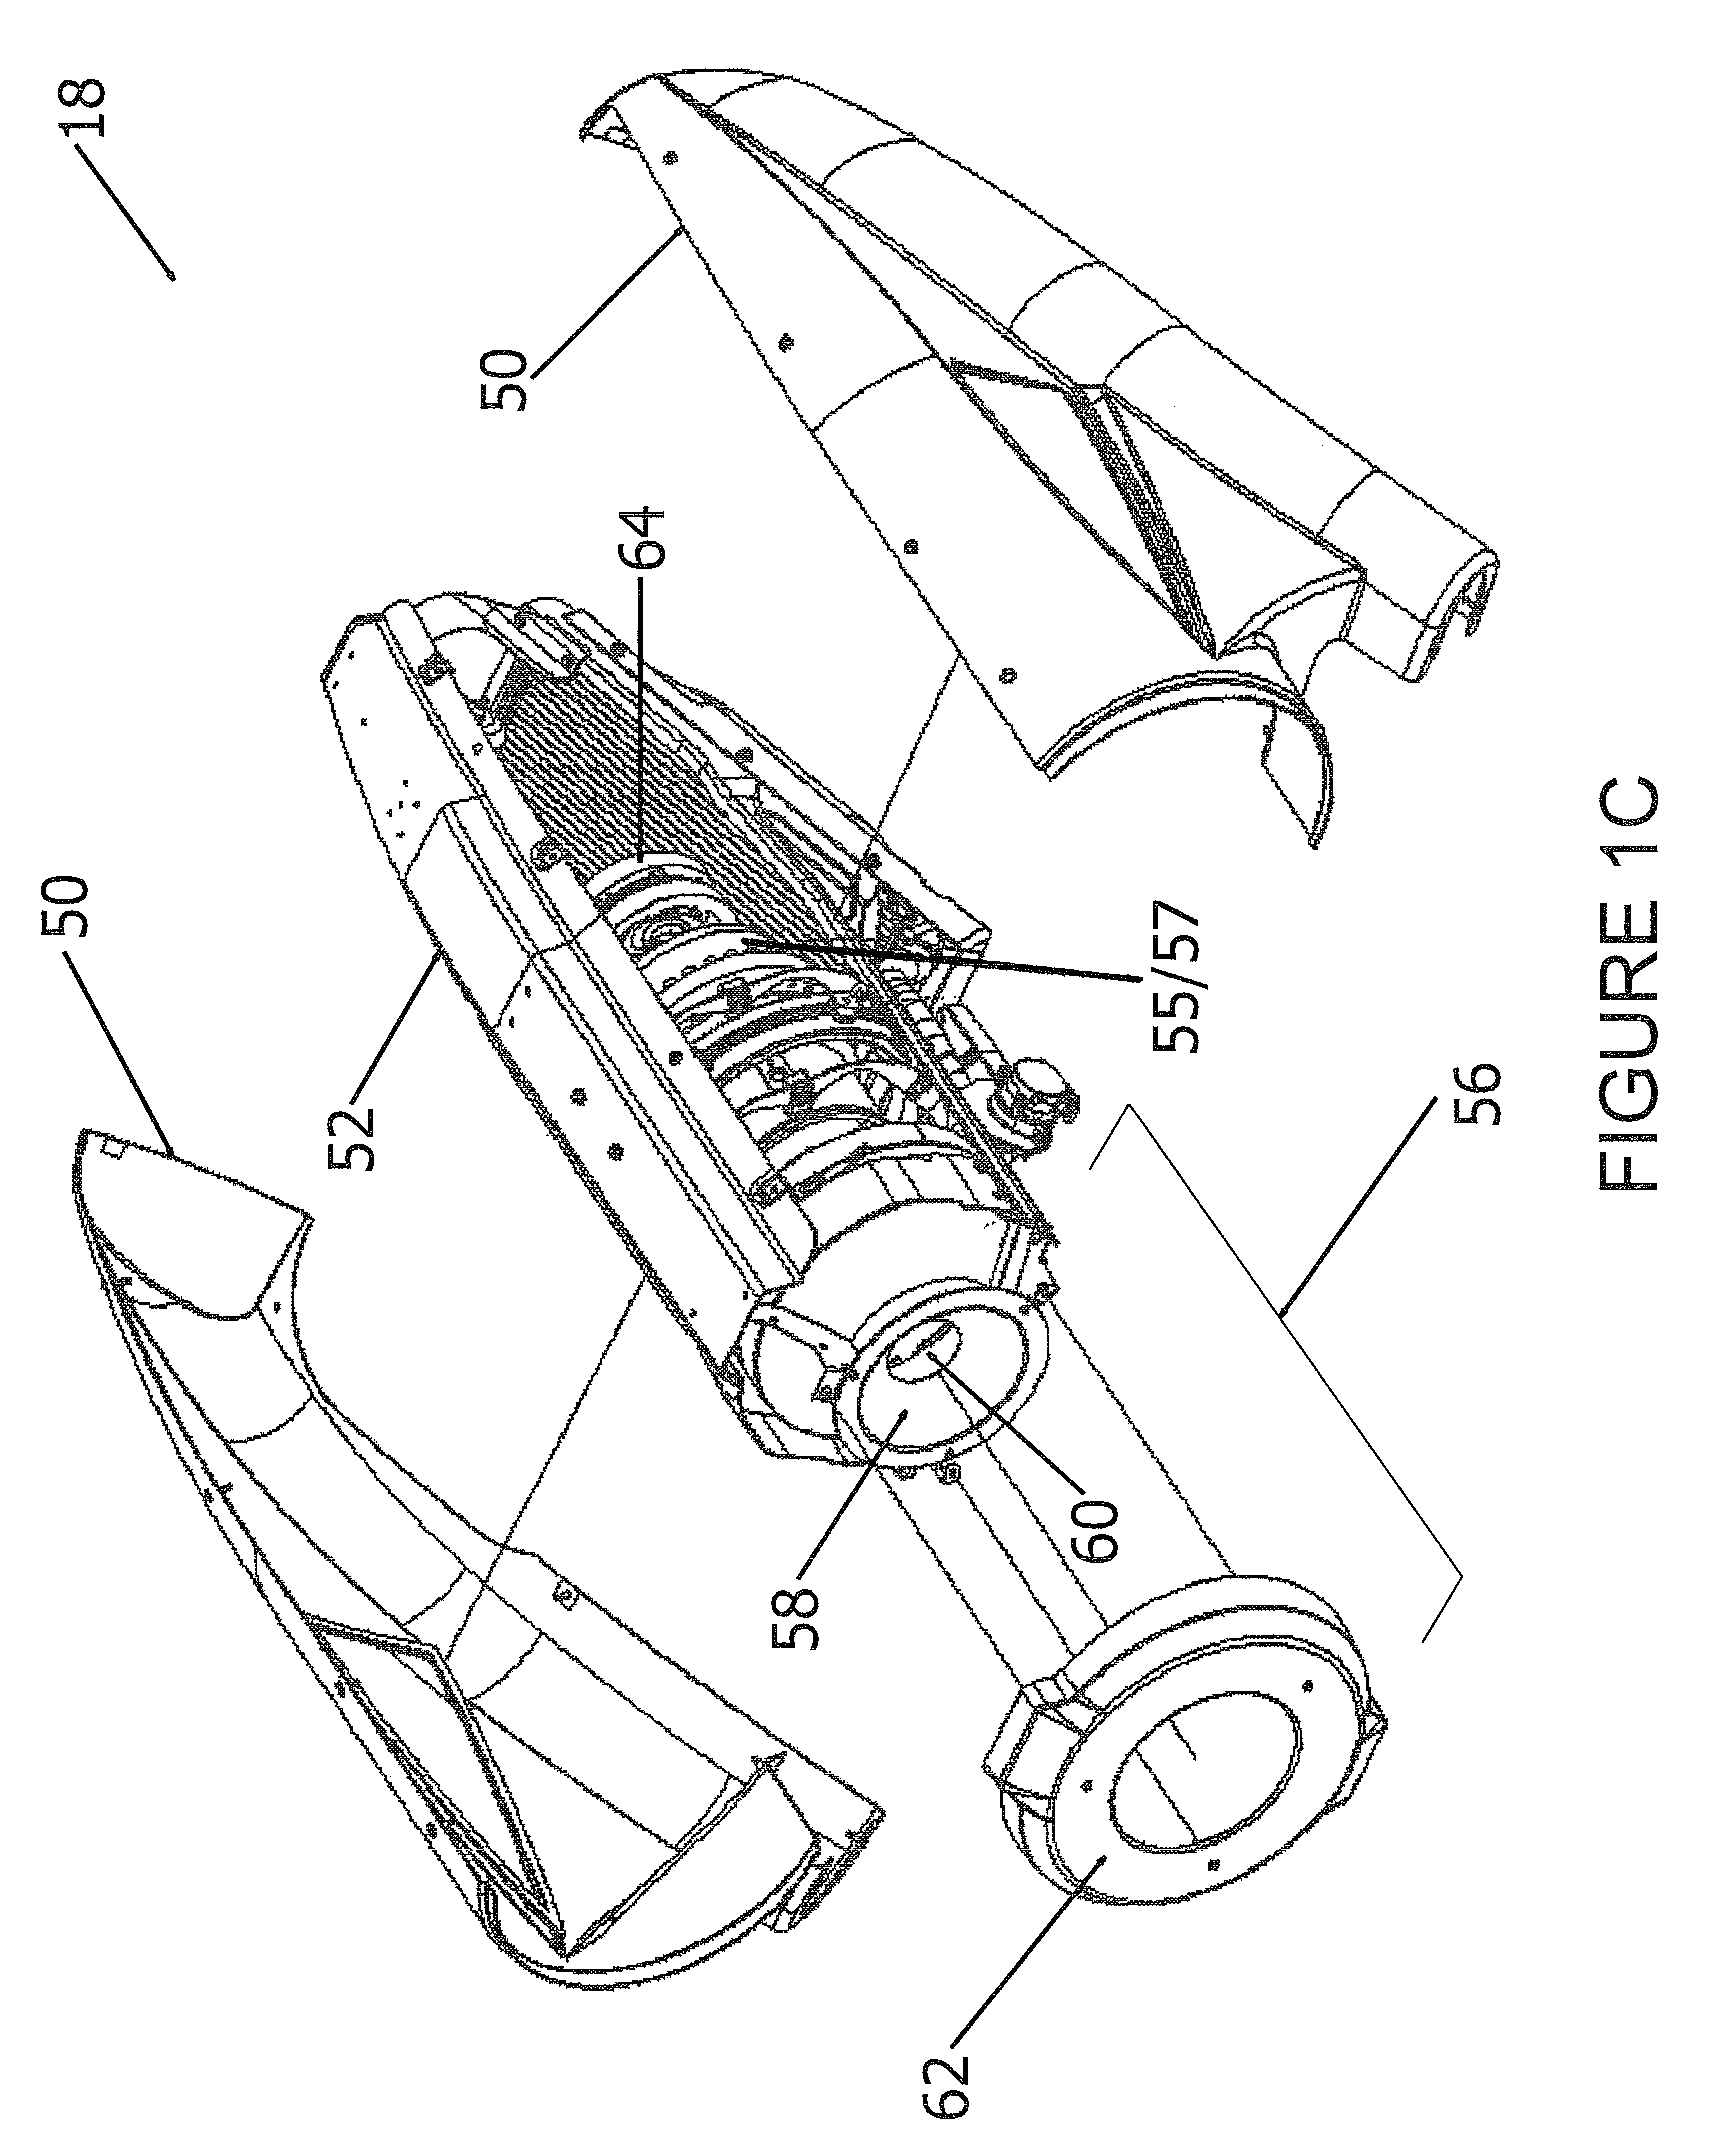 stirling engine systems apparatus and methods us 8151568 b2 patent drawing [ 1718 x 2148 Pixel ]